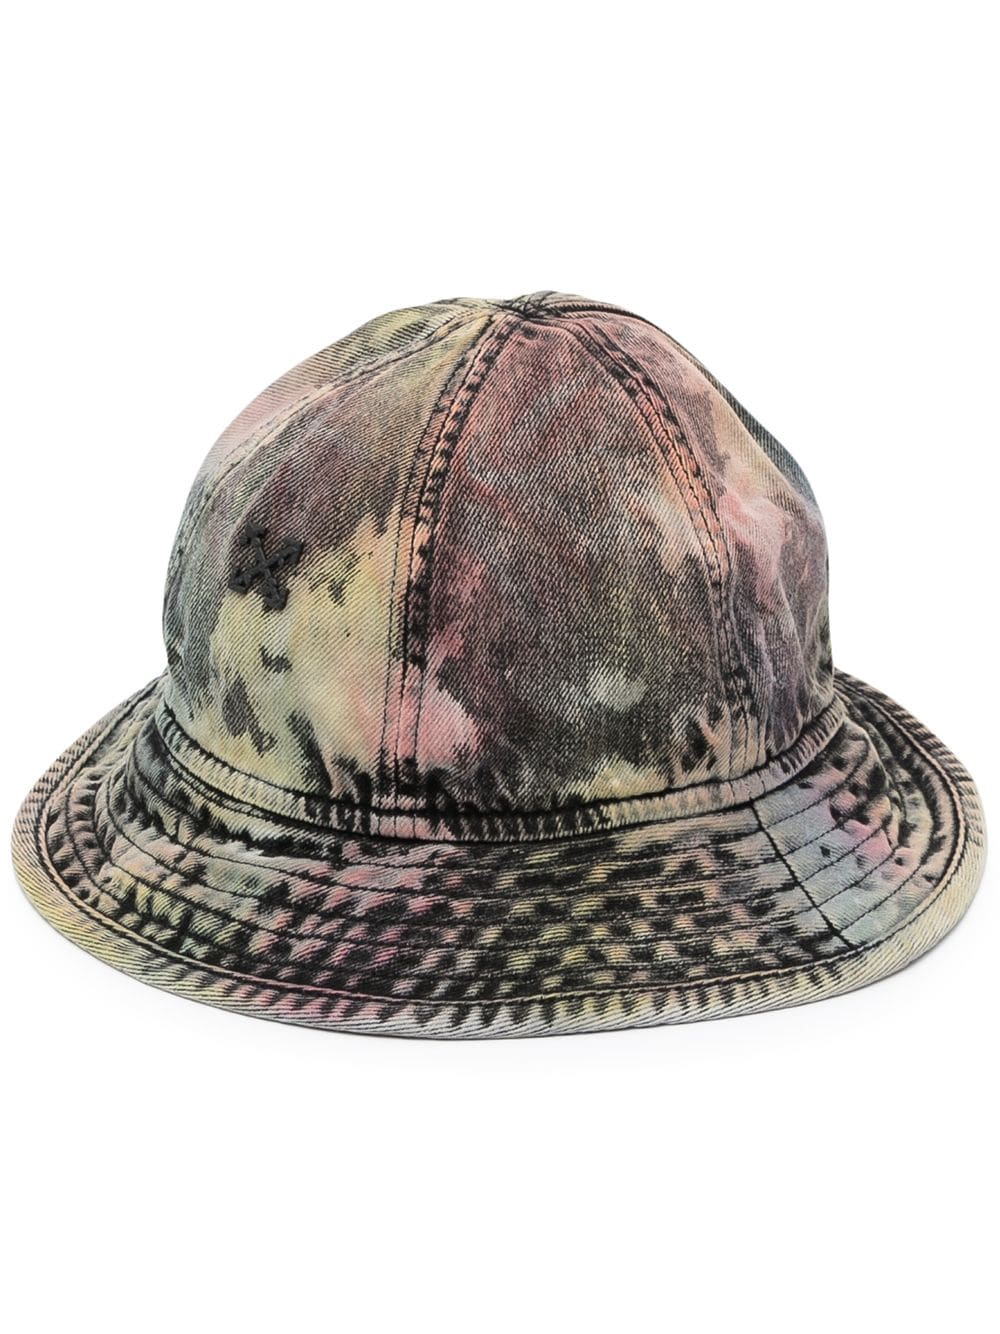 OFF-WHITE EV DENIM POCKET BUCKET HAT